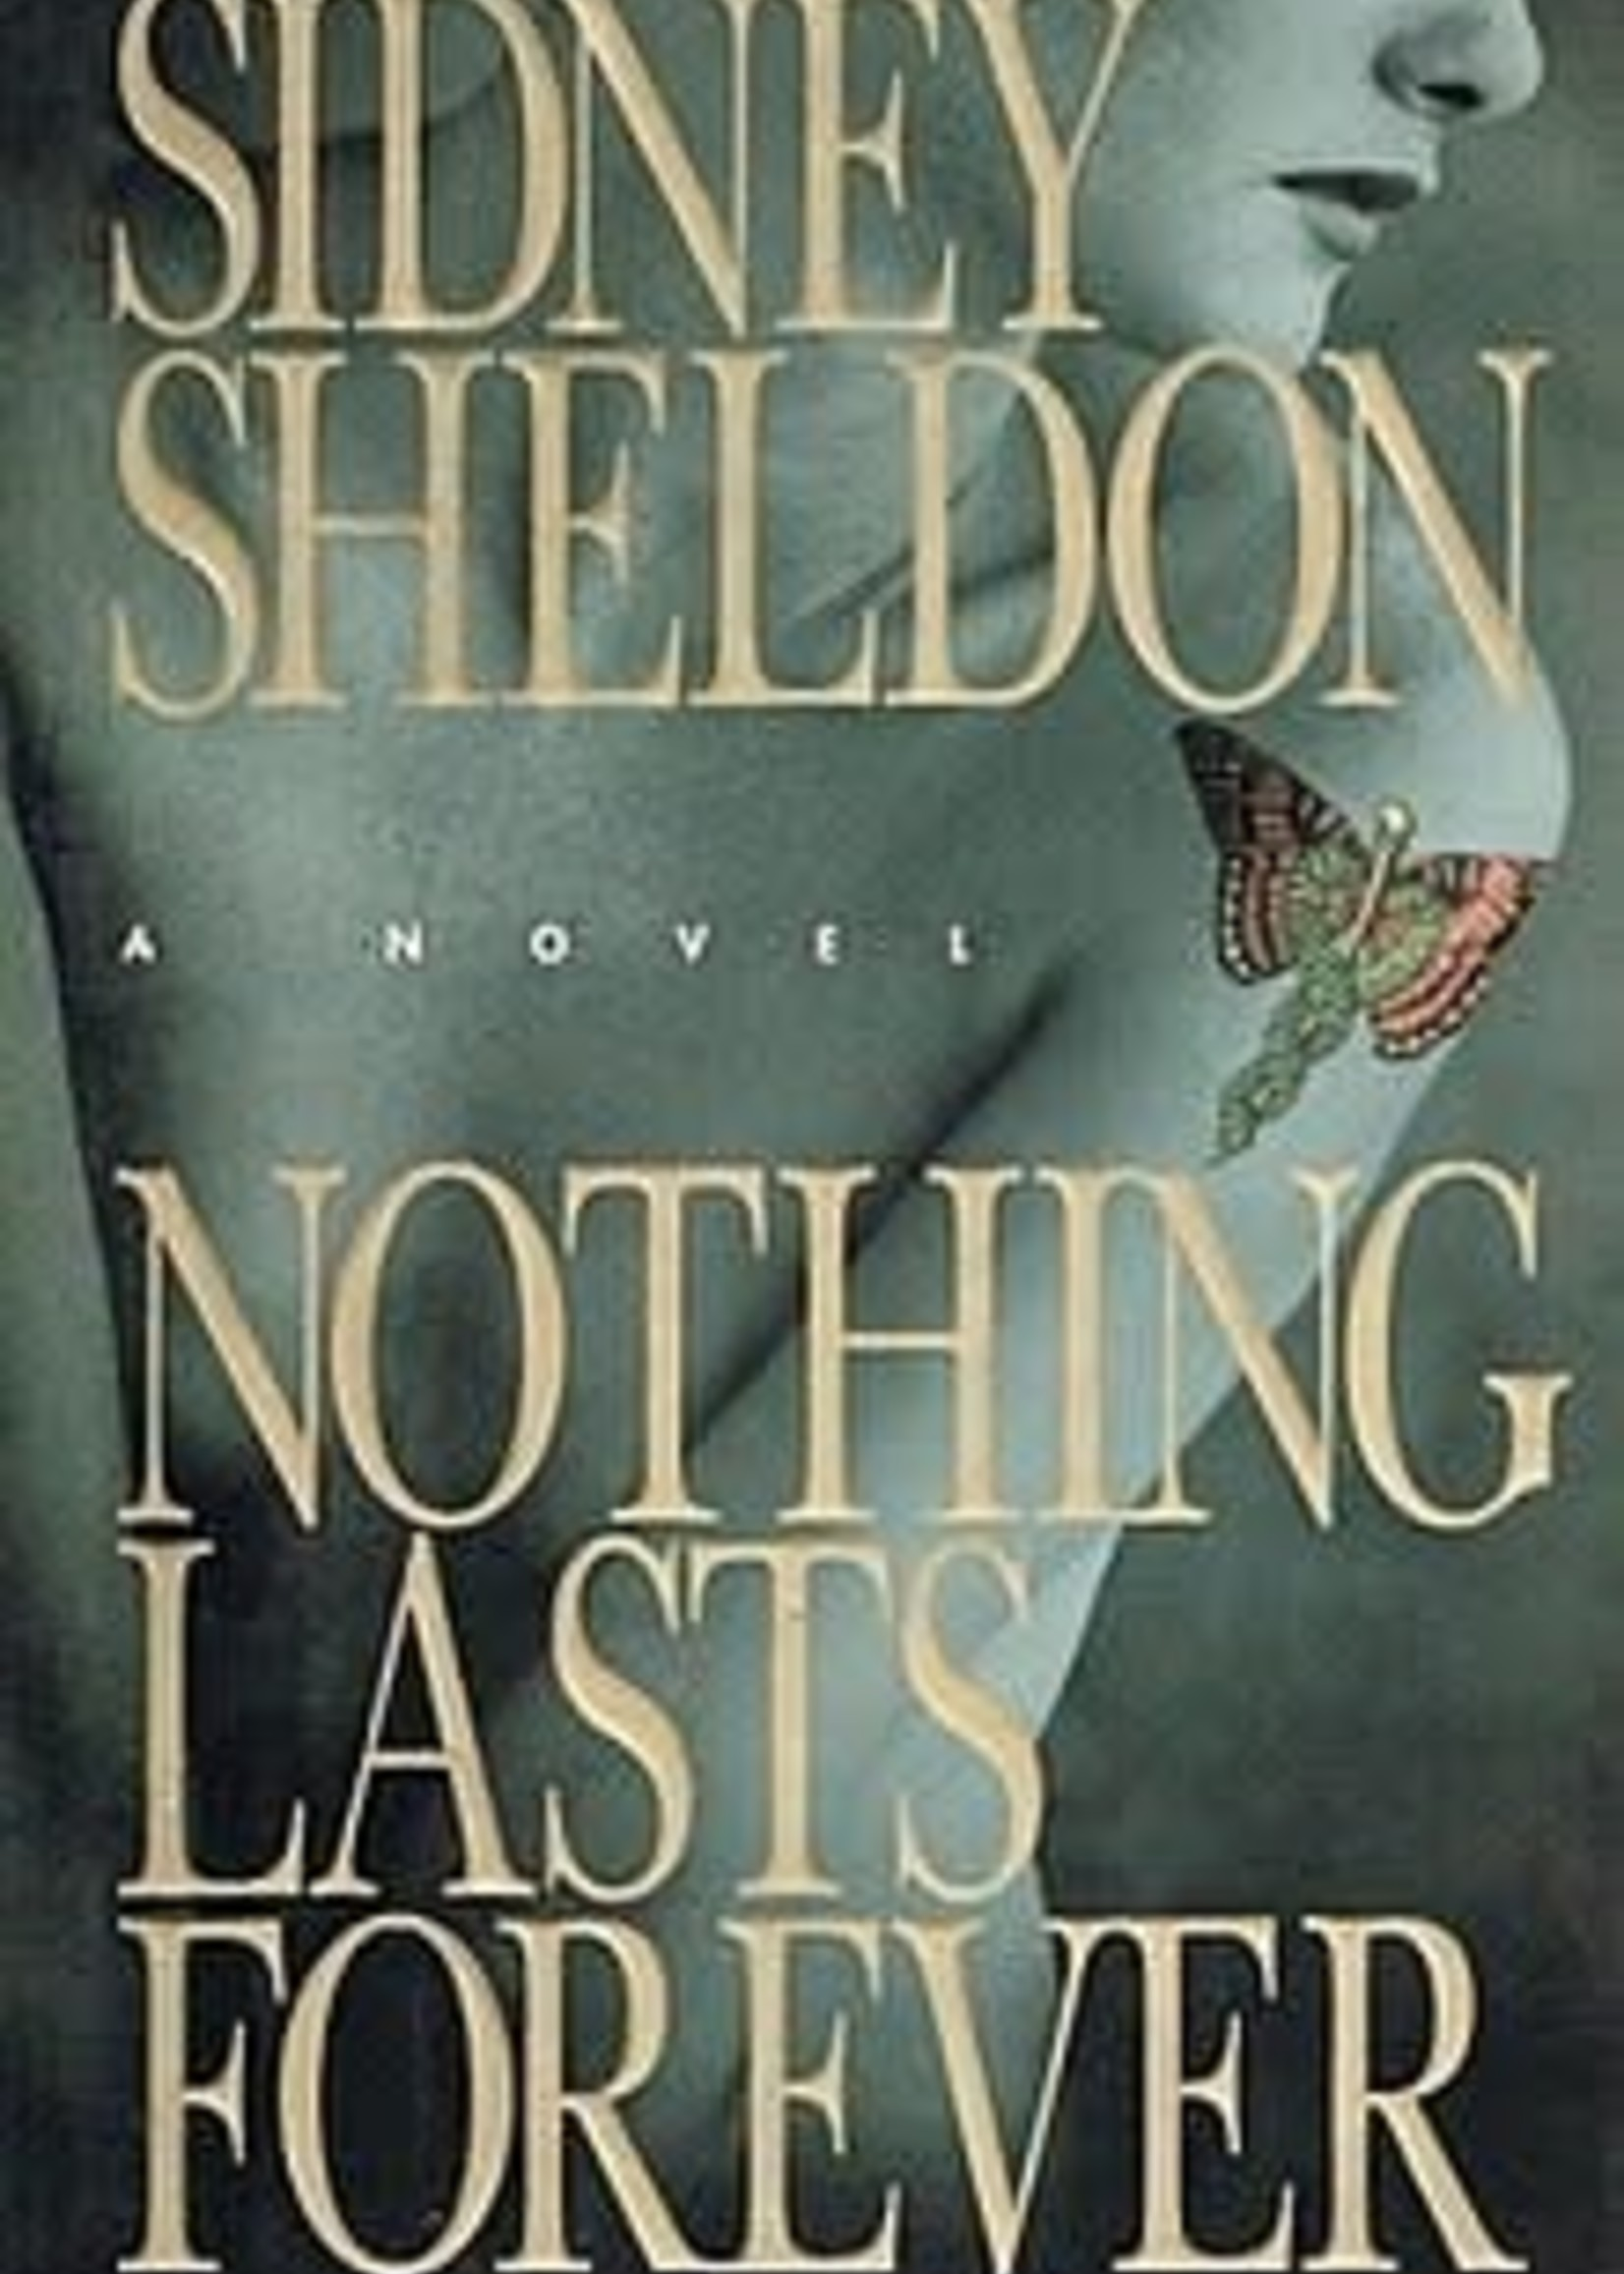 USED - Nothing Lasts Forever by Sidney Sheldon